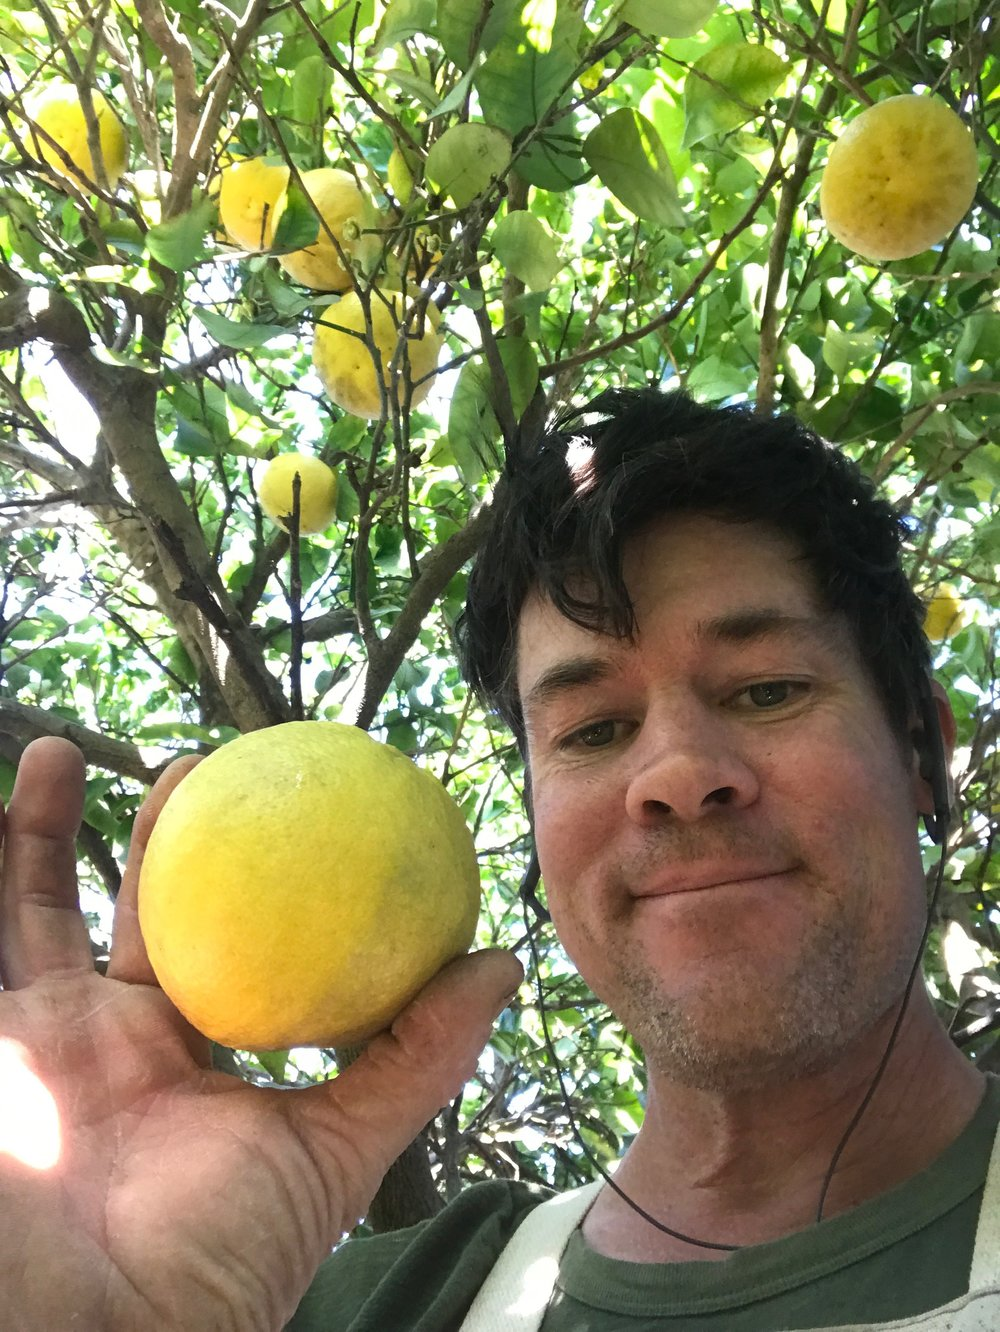 Farmer Dusty picking yellow grapefruit.